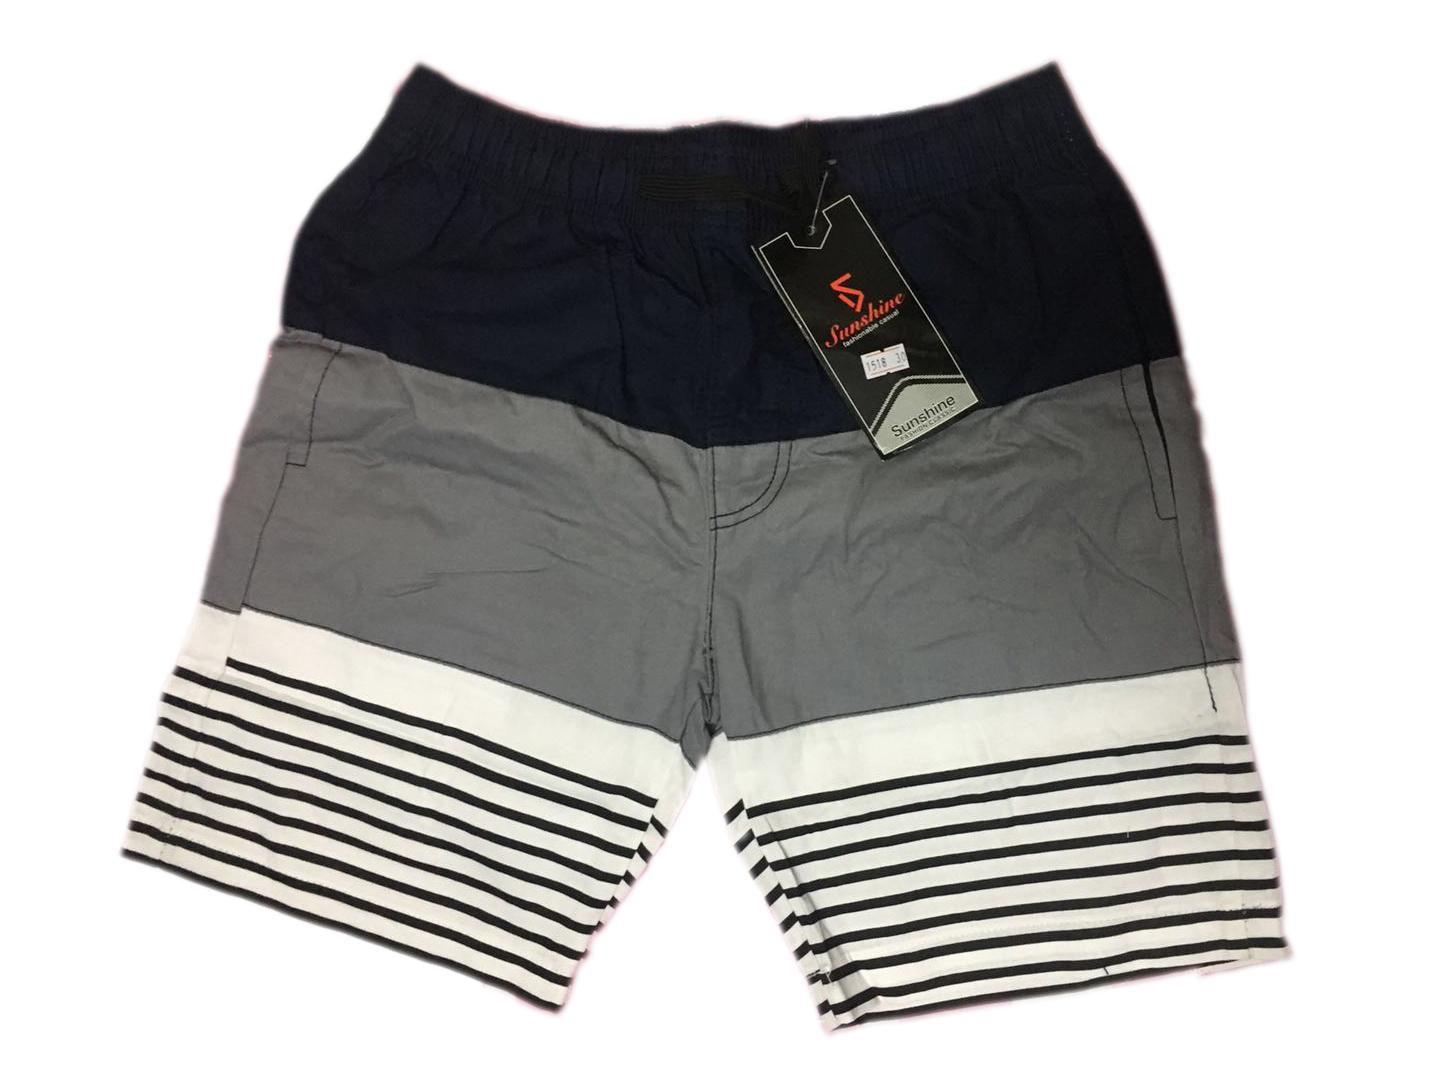 74086f383 Shorts for Men for sale - Mens Shorts Online Deals & Prices in ...